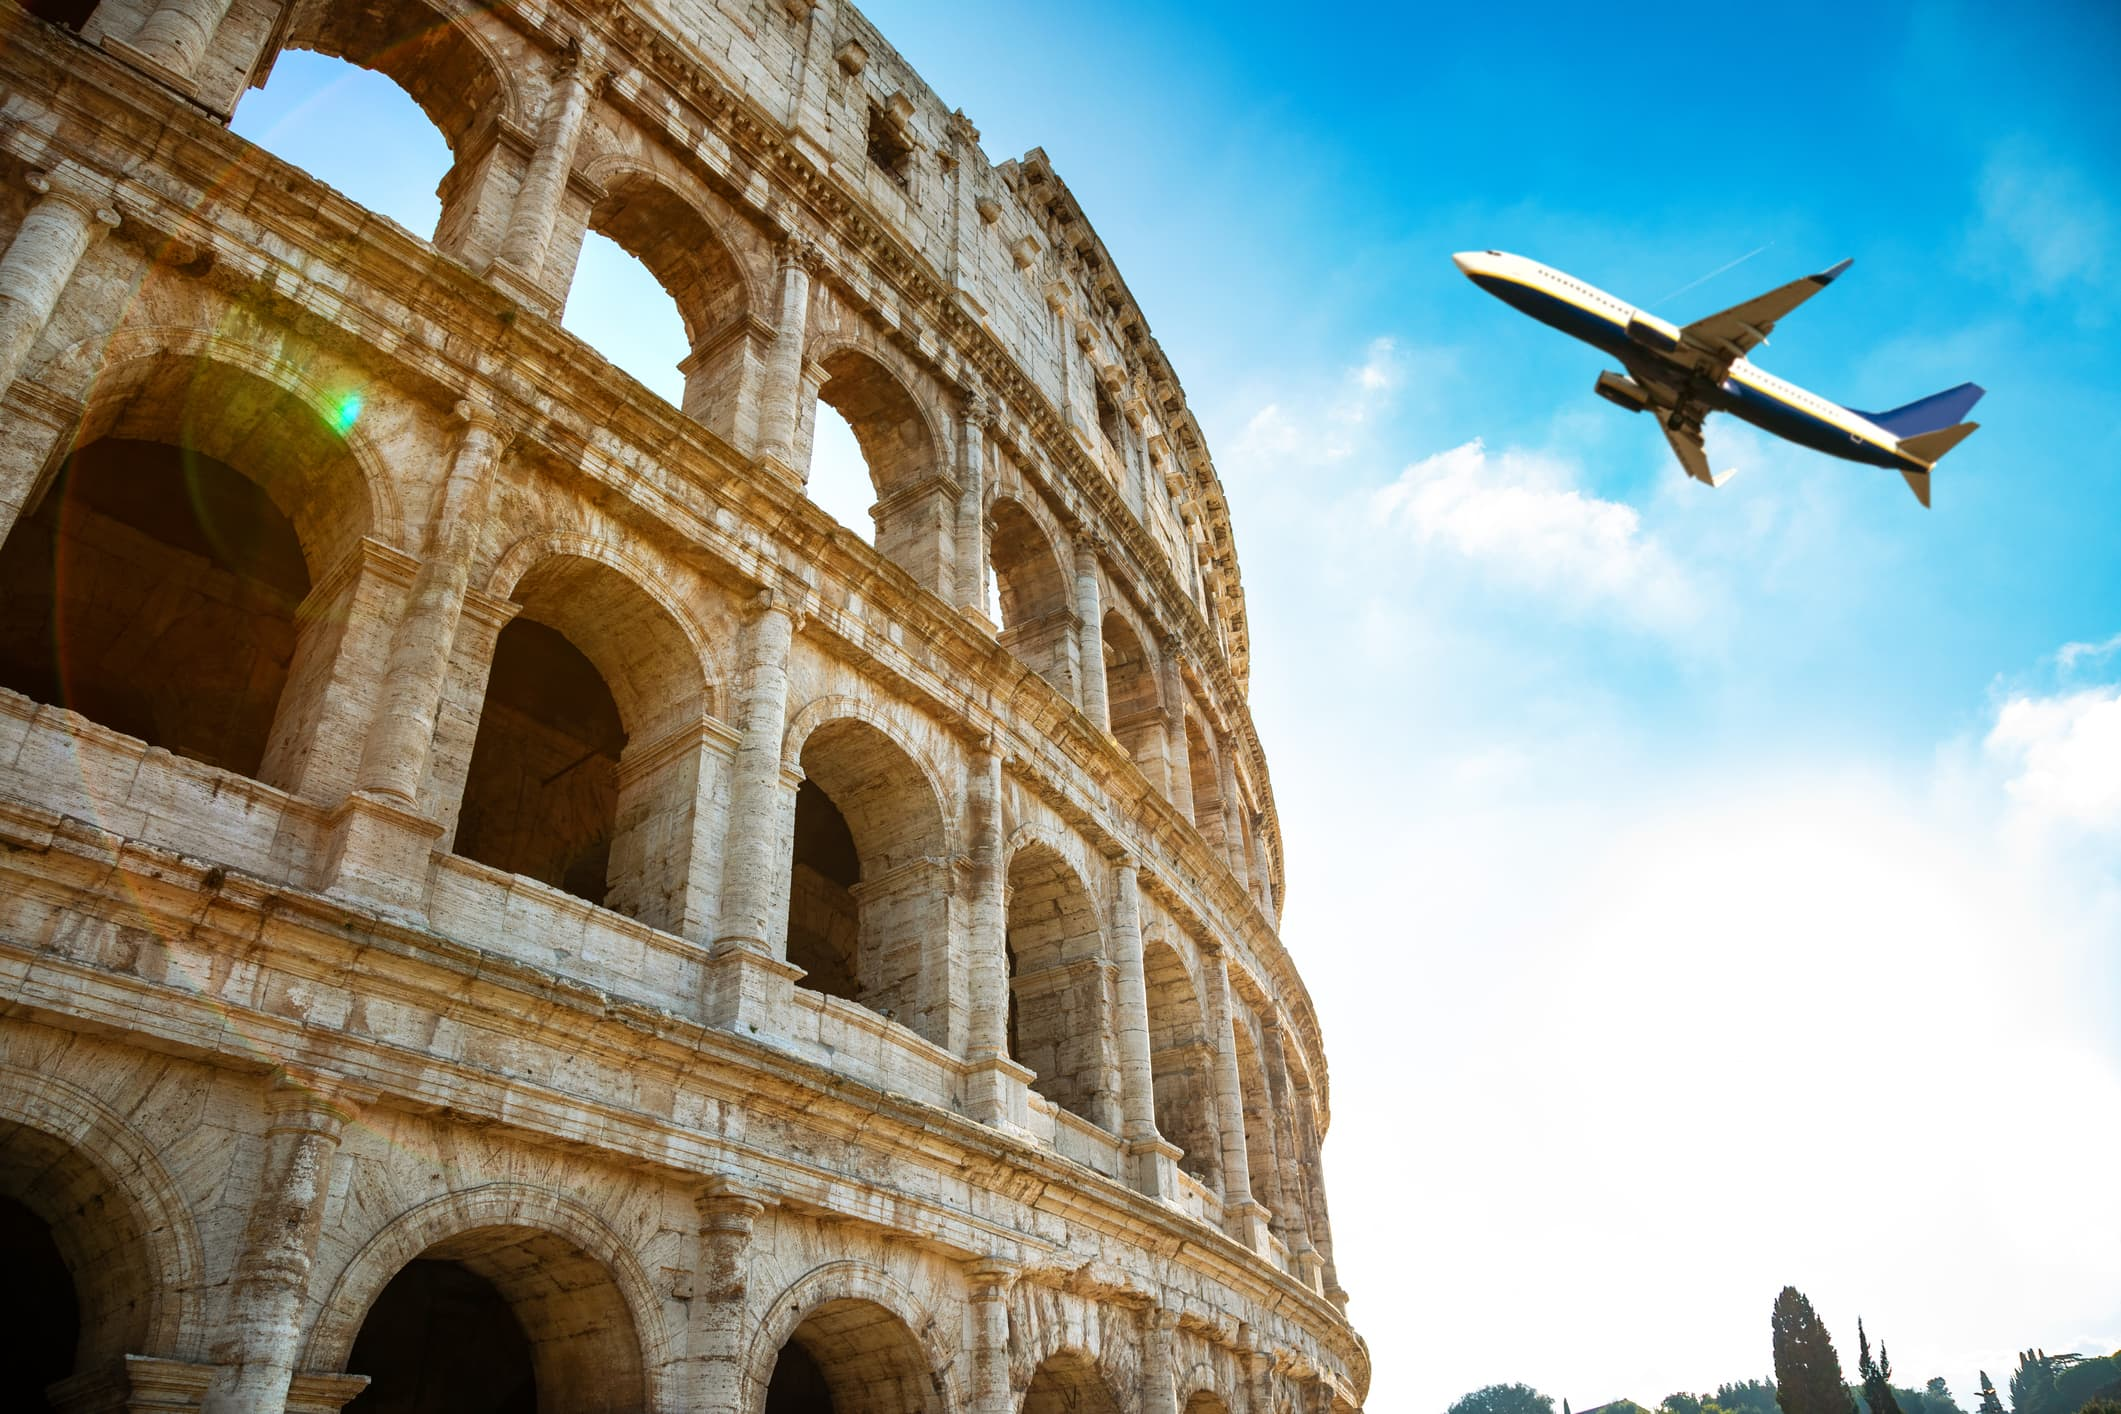 As Europe cracks the door open to visitors, airlines pounce with new trans-Atlantic flights